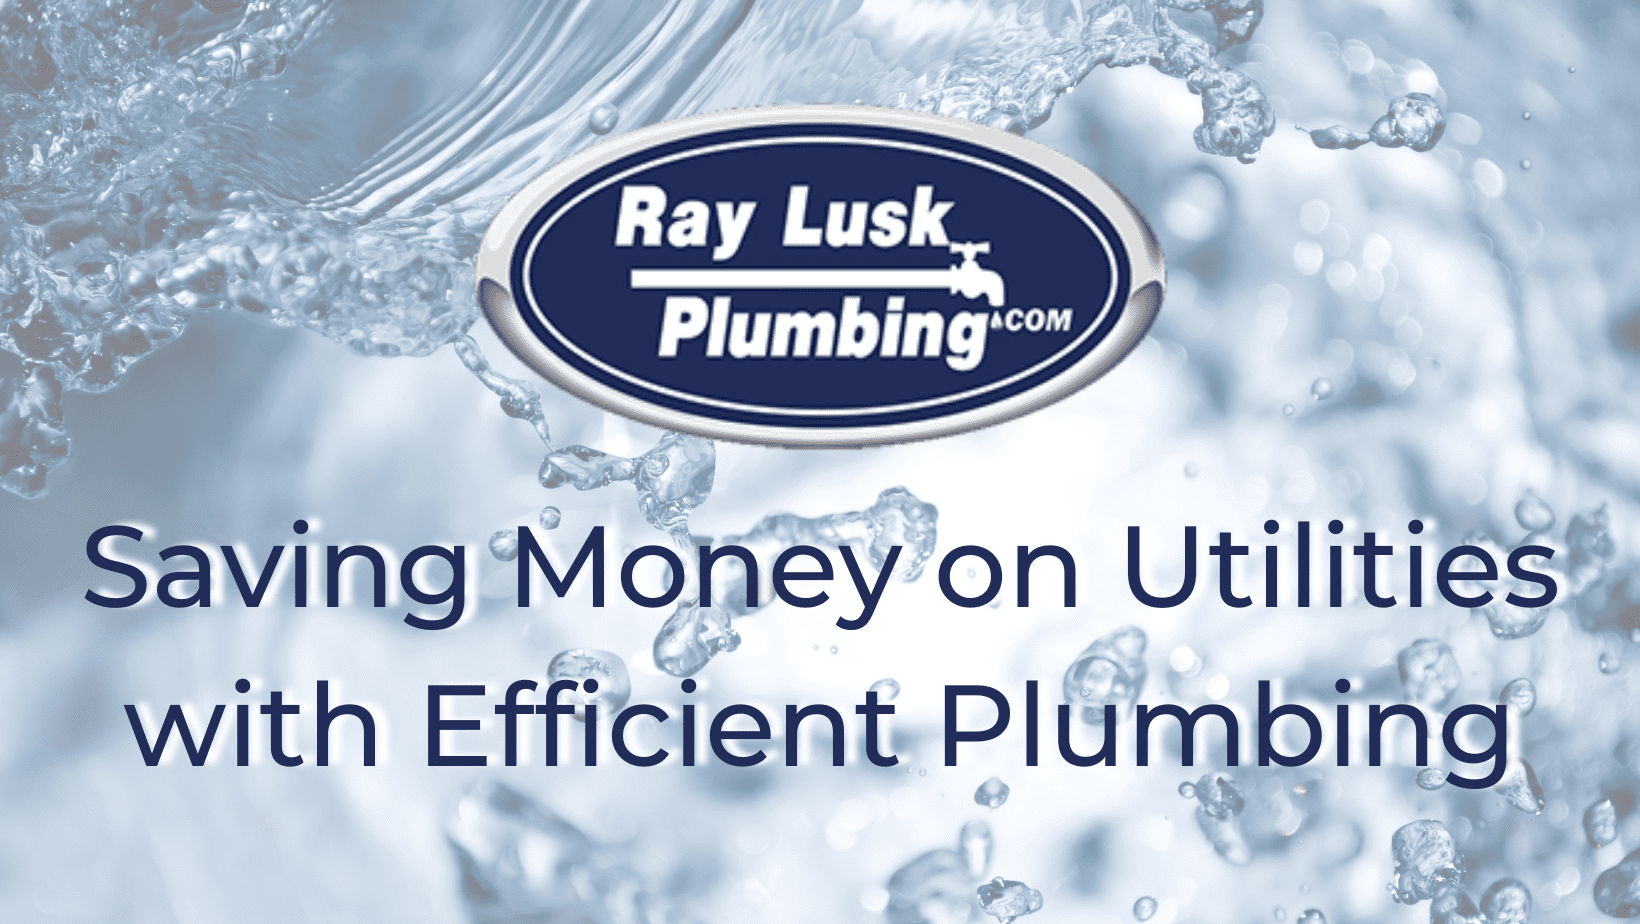 Image text reads: Save Money on Utilities with Efficient Plumbing